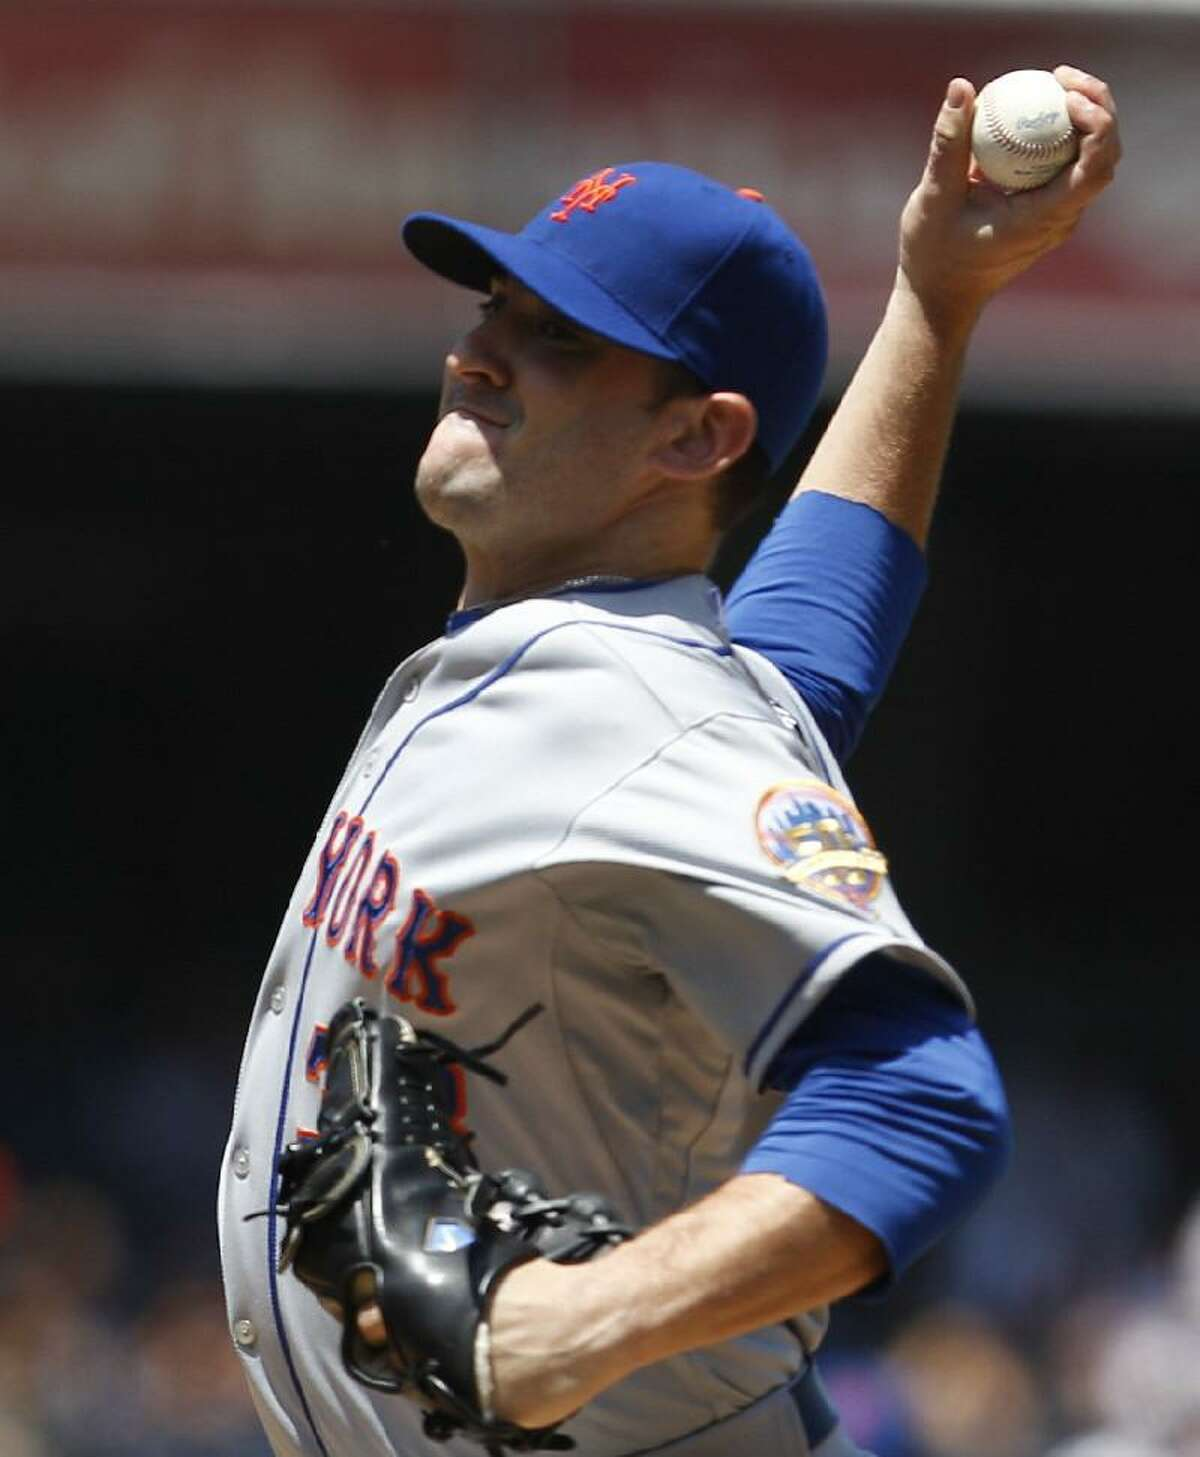 ASSOCIATED PRESS New York Mets starting pitcher Matt Harvey throws against the San Diego Padres during the first inning of Sunday's game in San Diego.